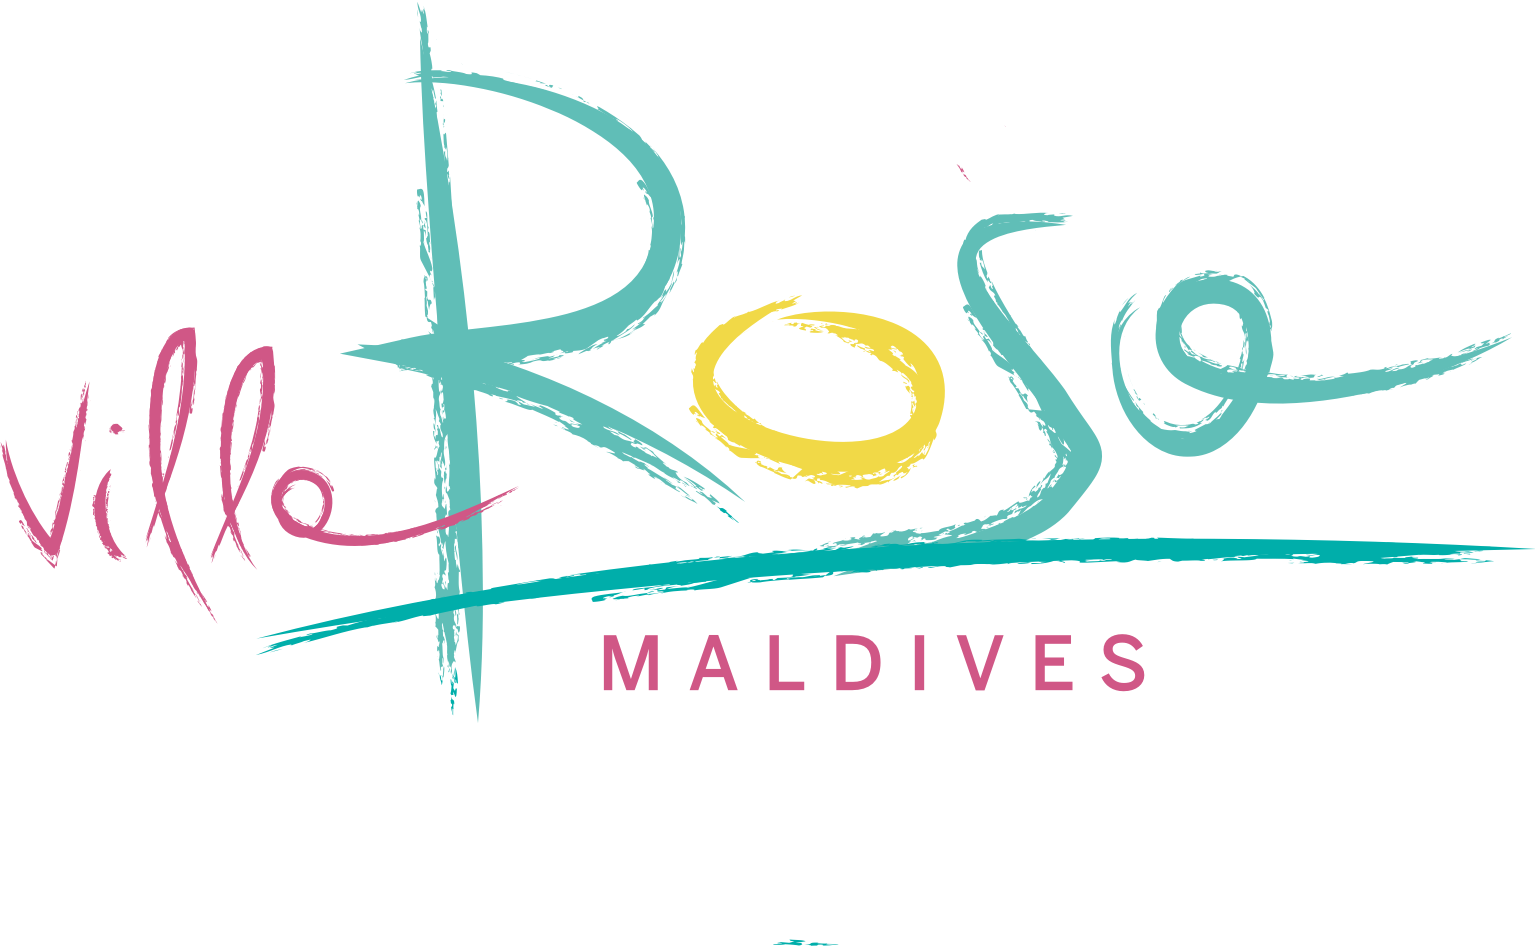 Villa Rosa Maldives - Guest House in Maldive